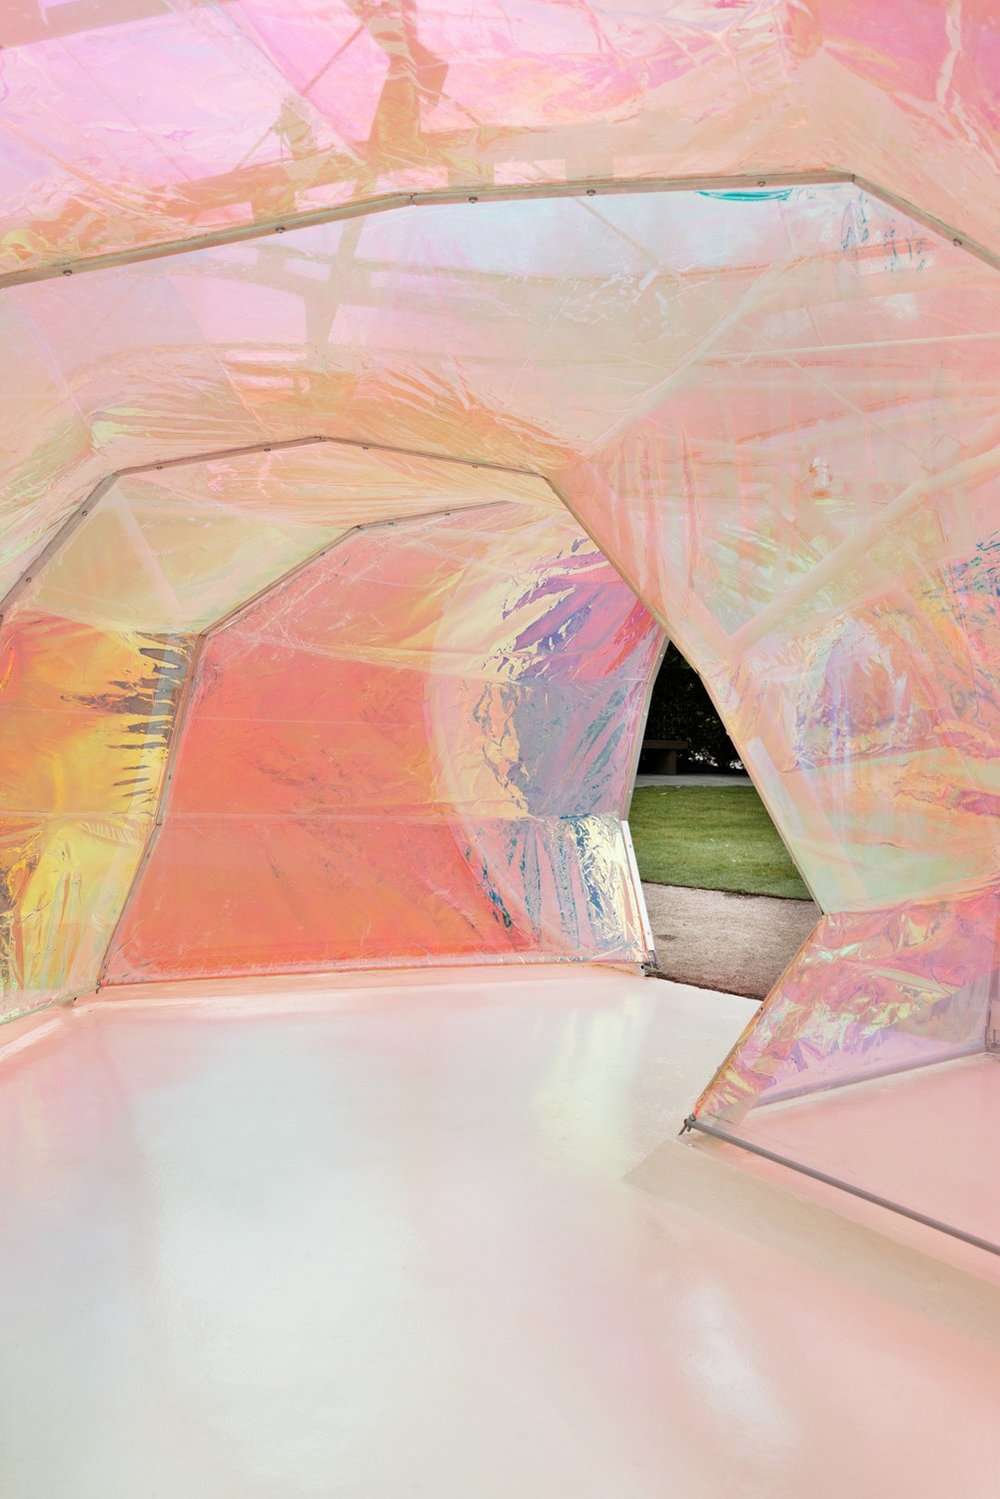 Image 28 of 34 | Serpentine Gallery Pavilion 2015 by selgascano